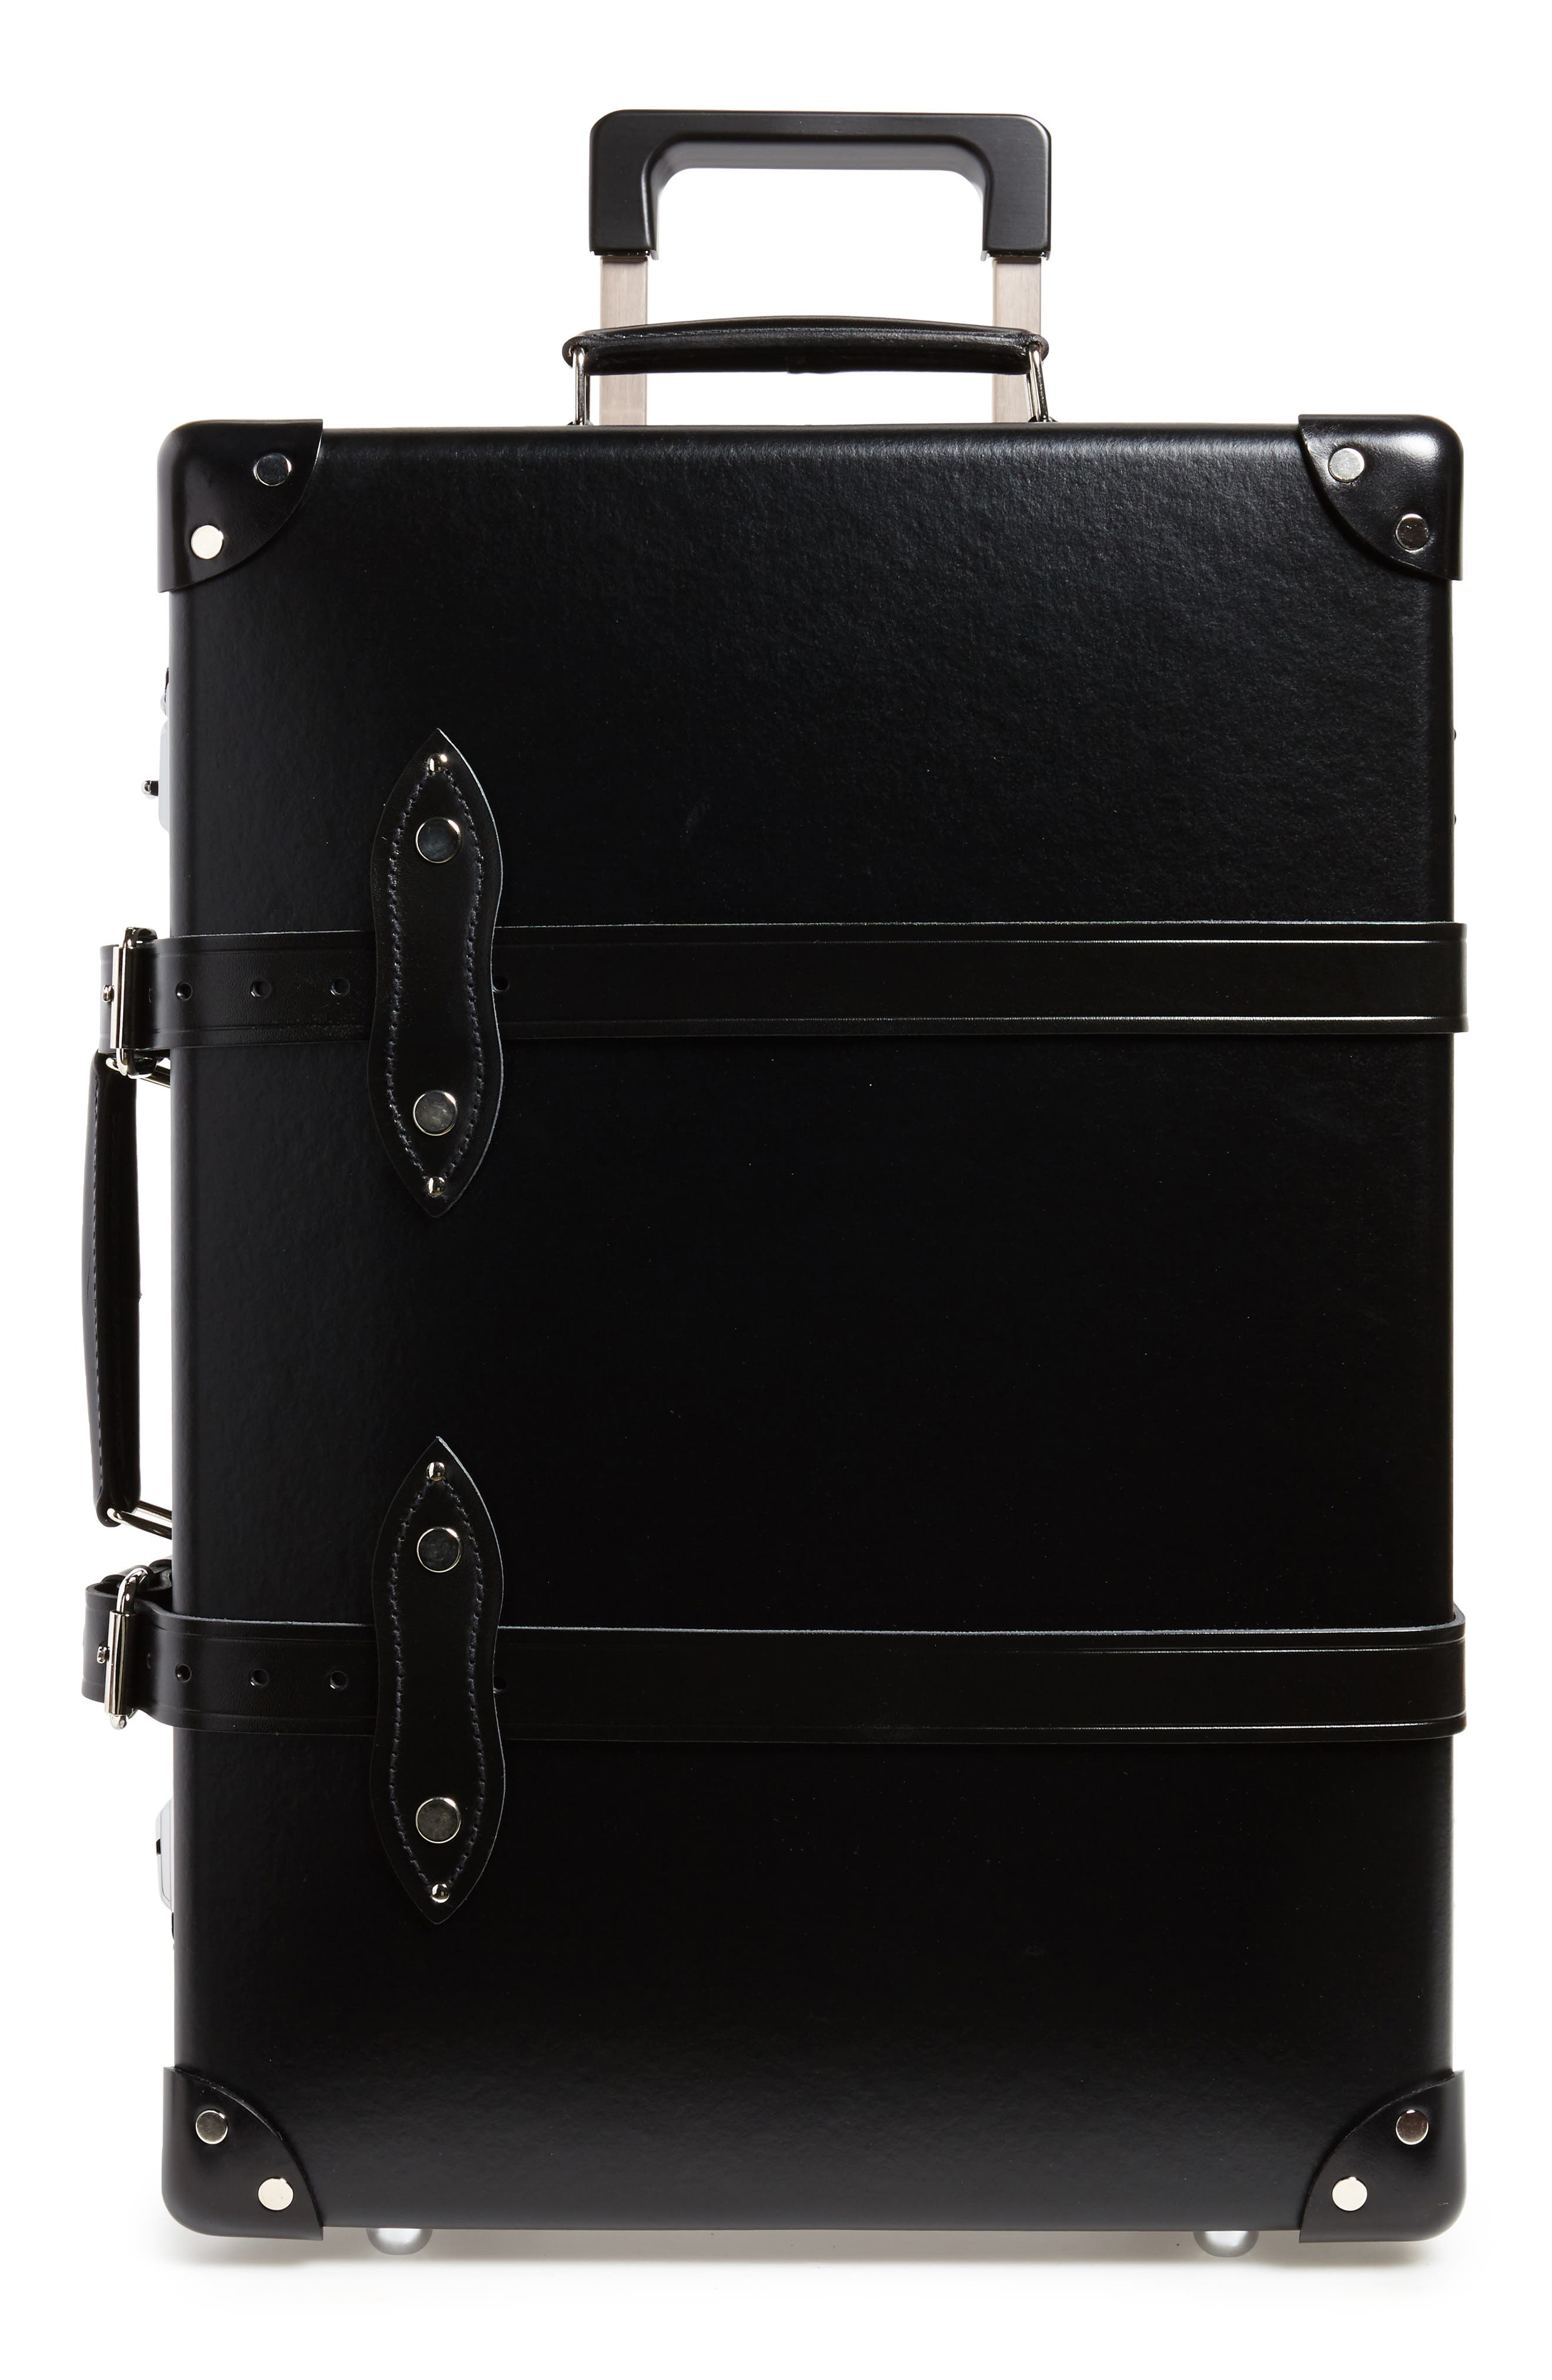 Centenary 21-Inch Hardshell Travel Trolley Case,                             Main thumbnail 1, color,                             Black/ Black